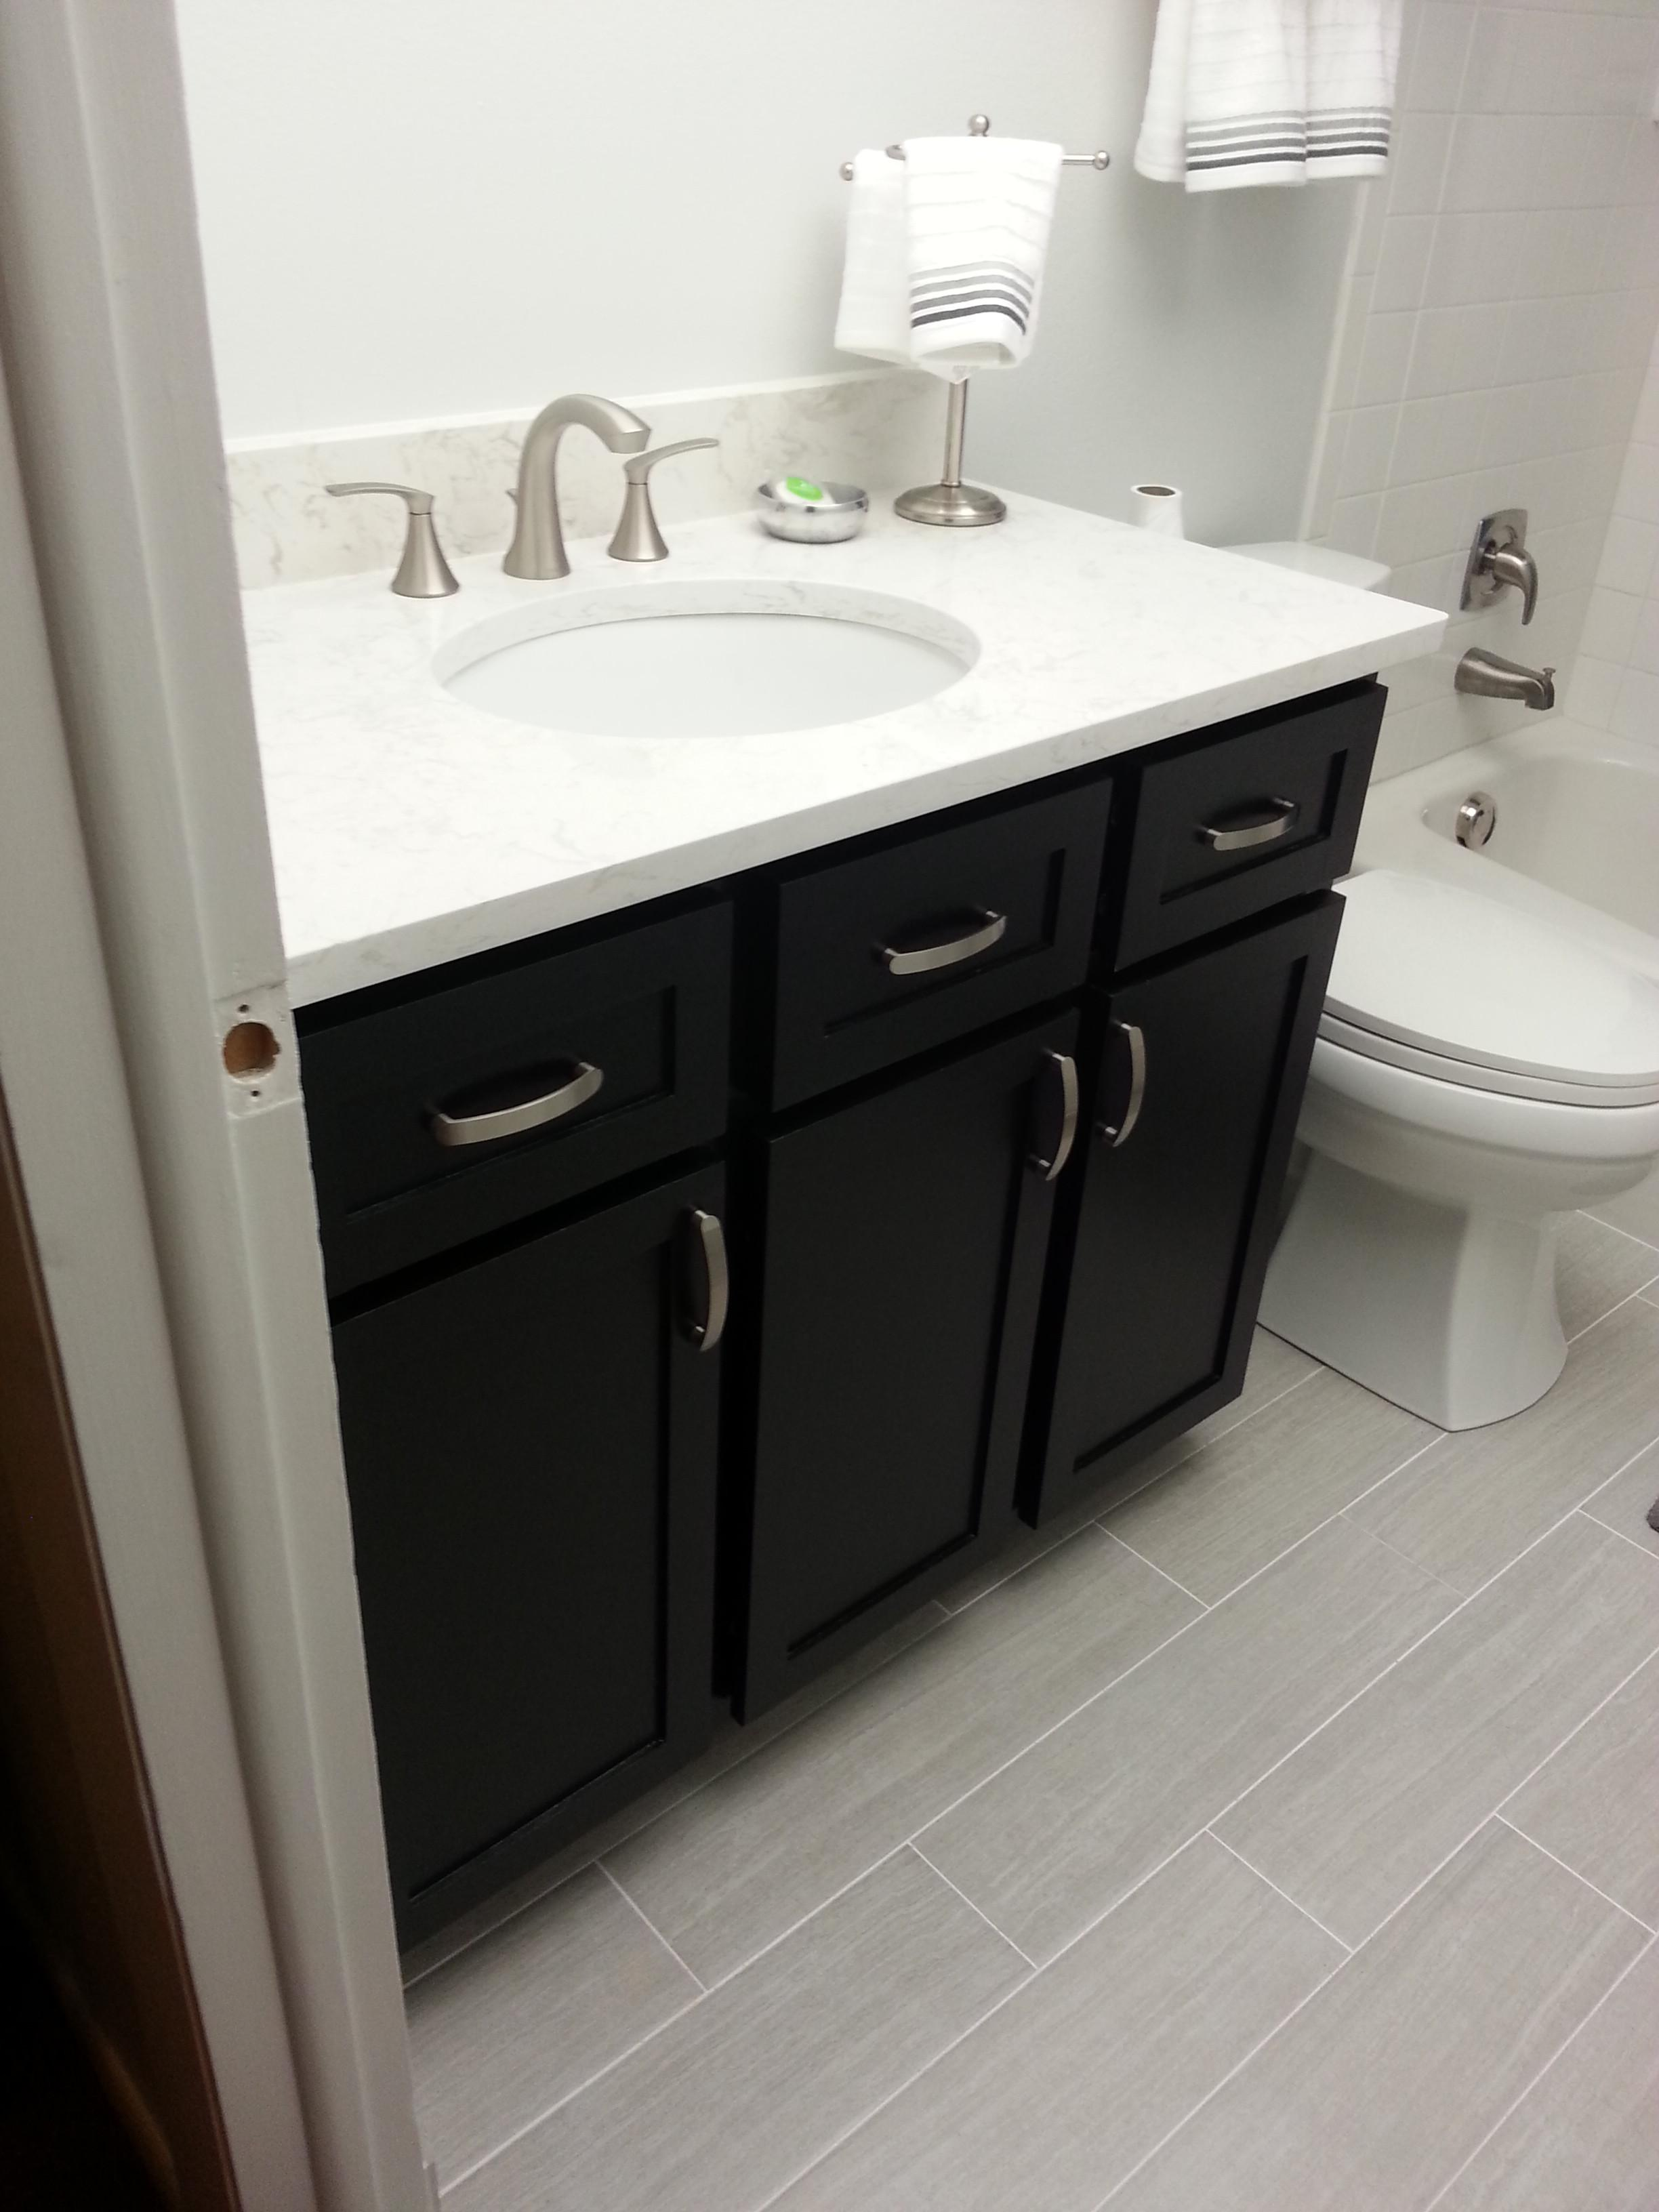 Ana White Guest Bath Remodel Diy Projects